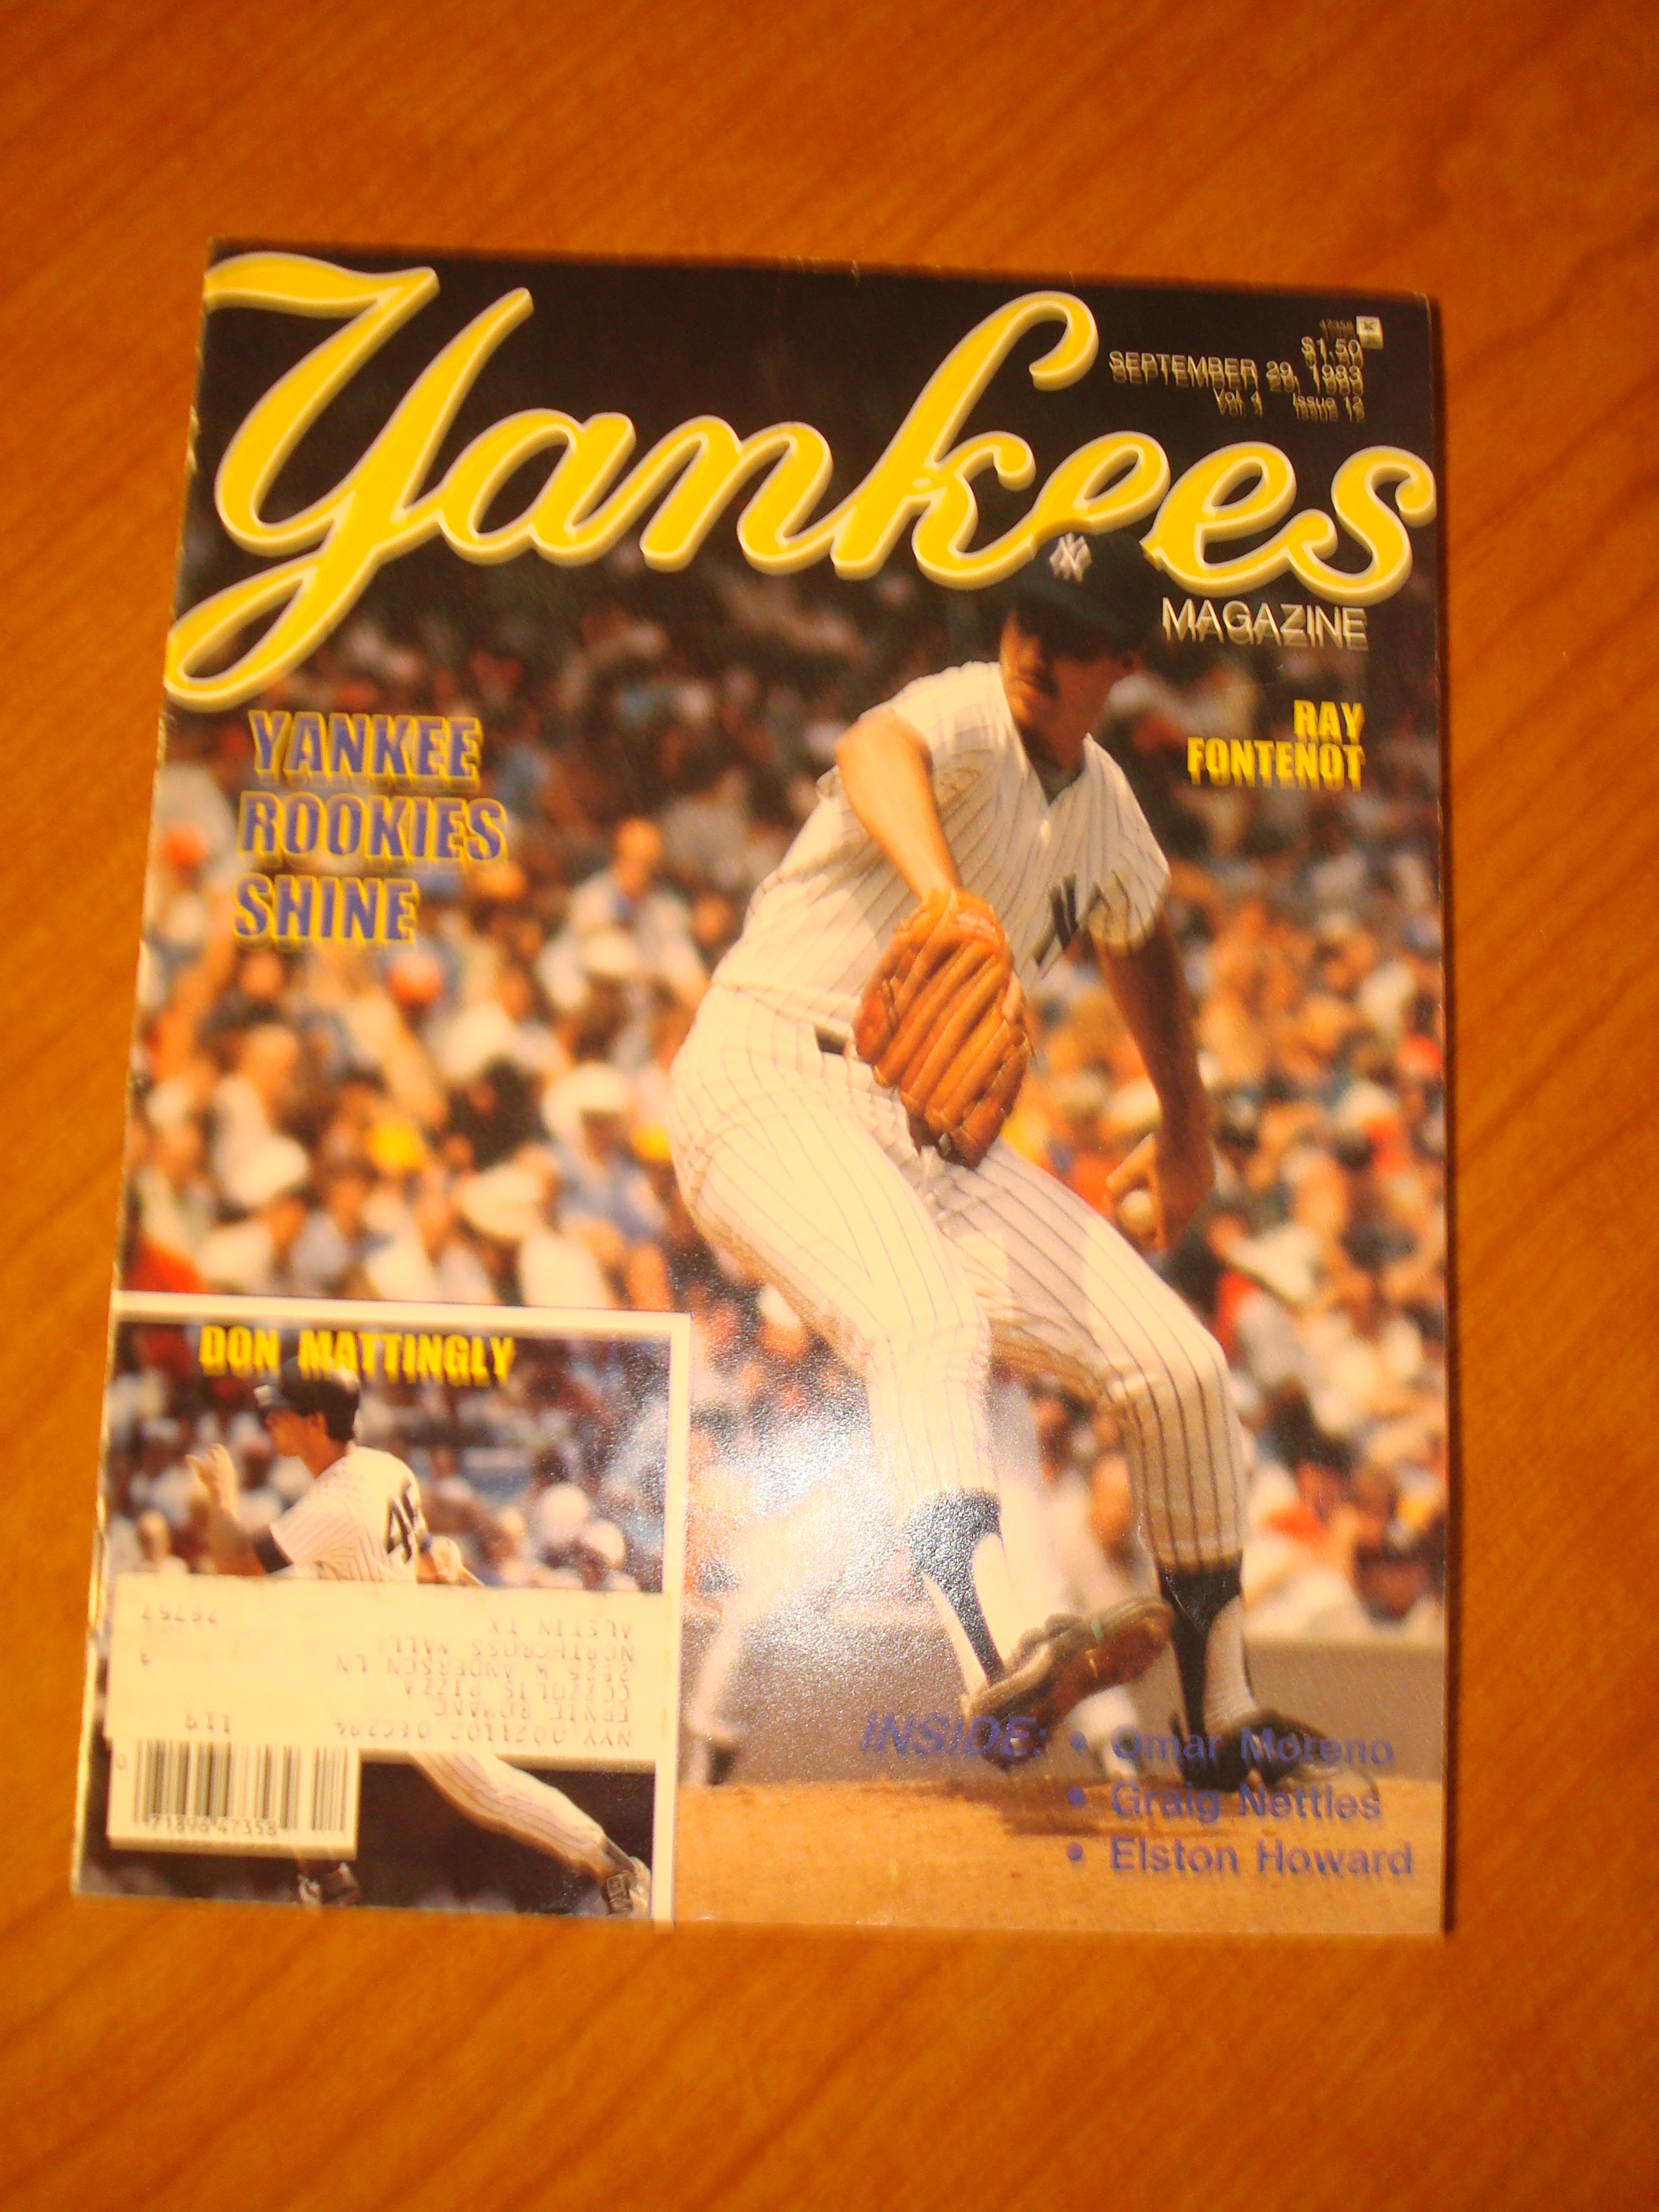 1983 New York Yankees season